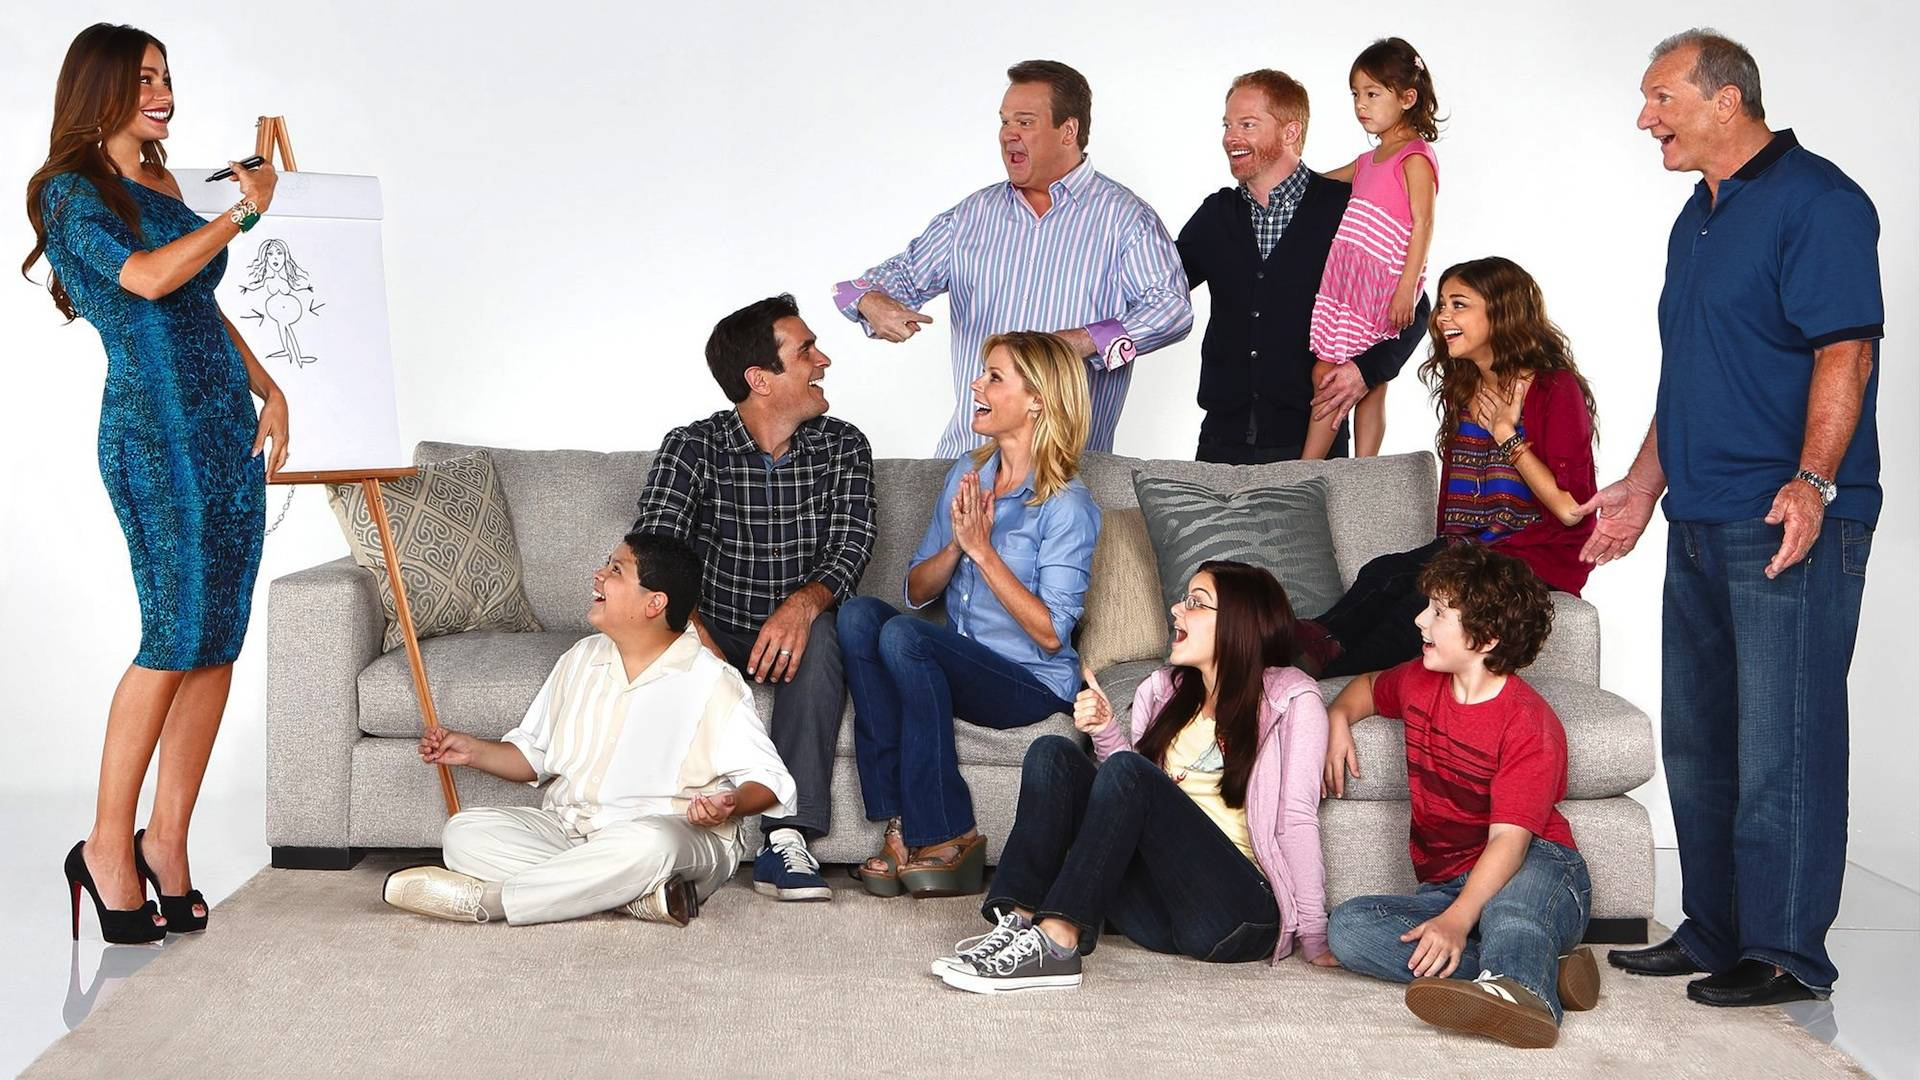 modern family wallpaper photo - photo #18